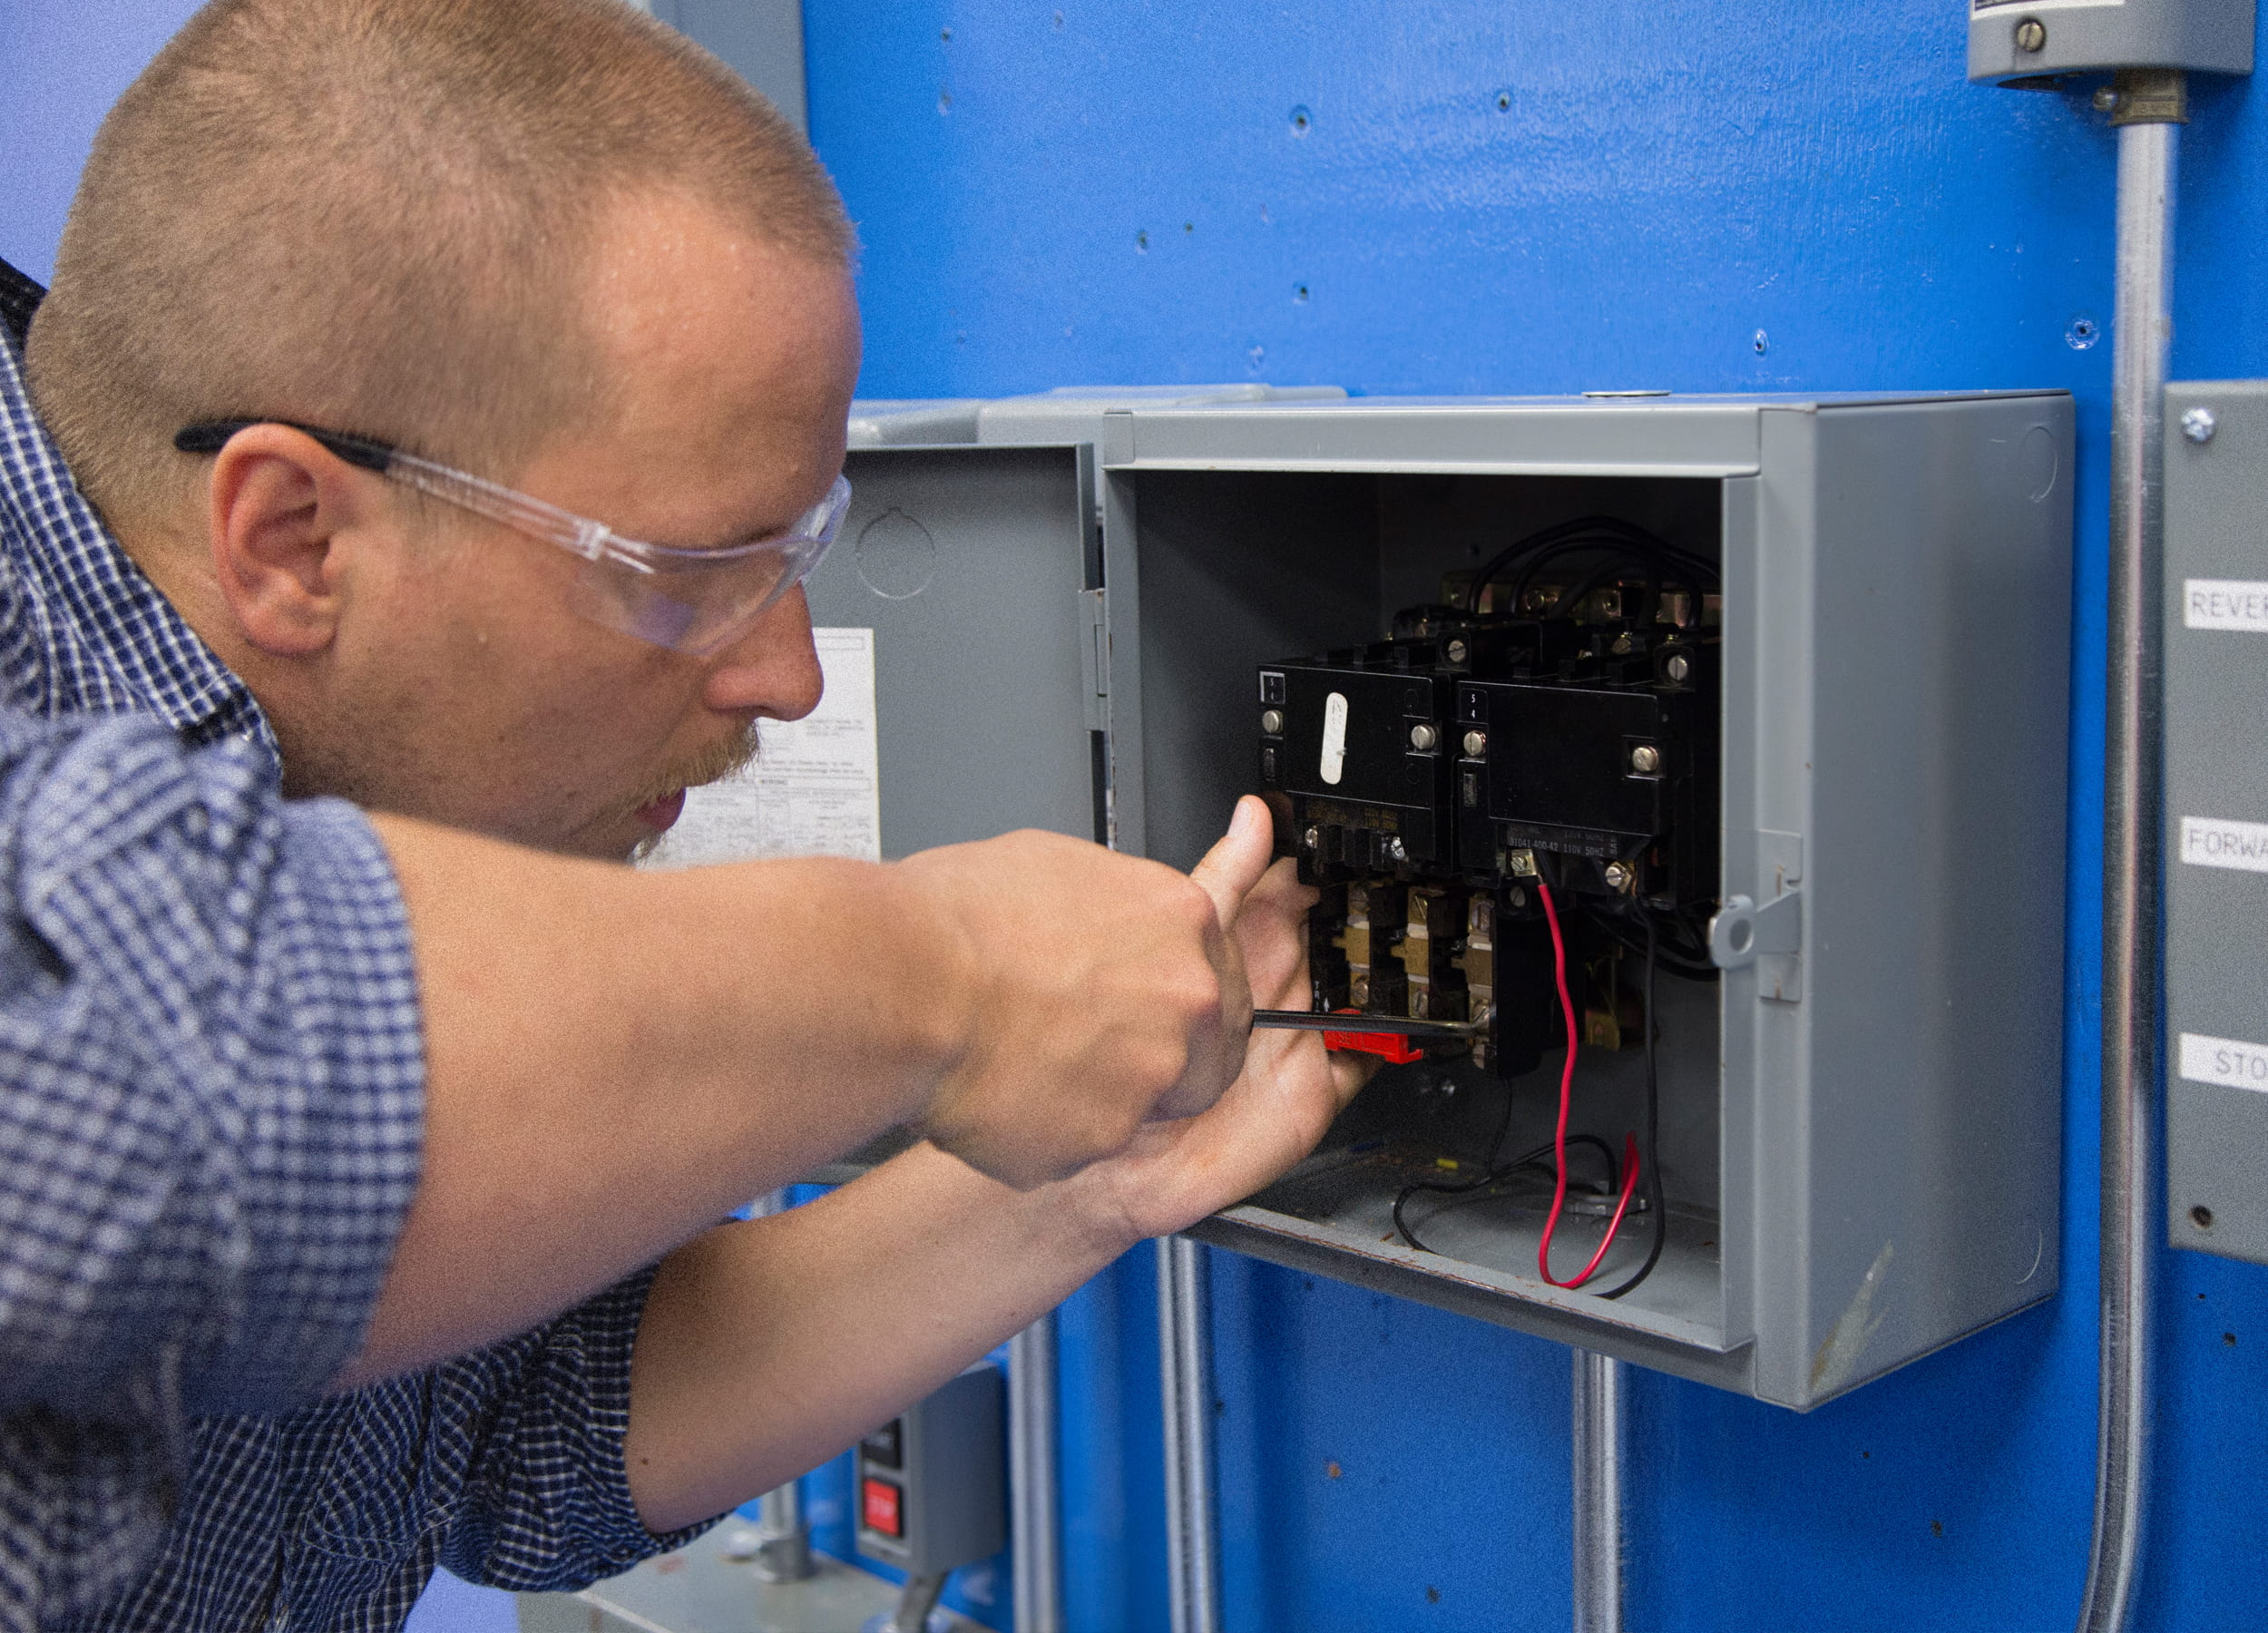 Electrical Engineering Technician student working on a panel